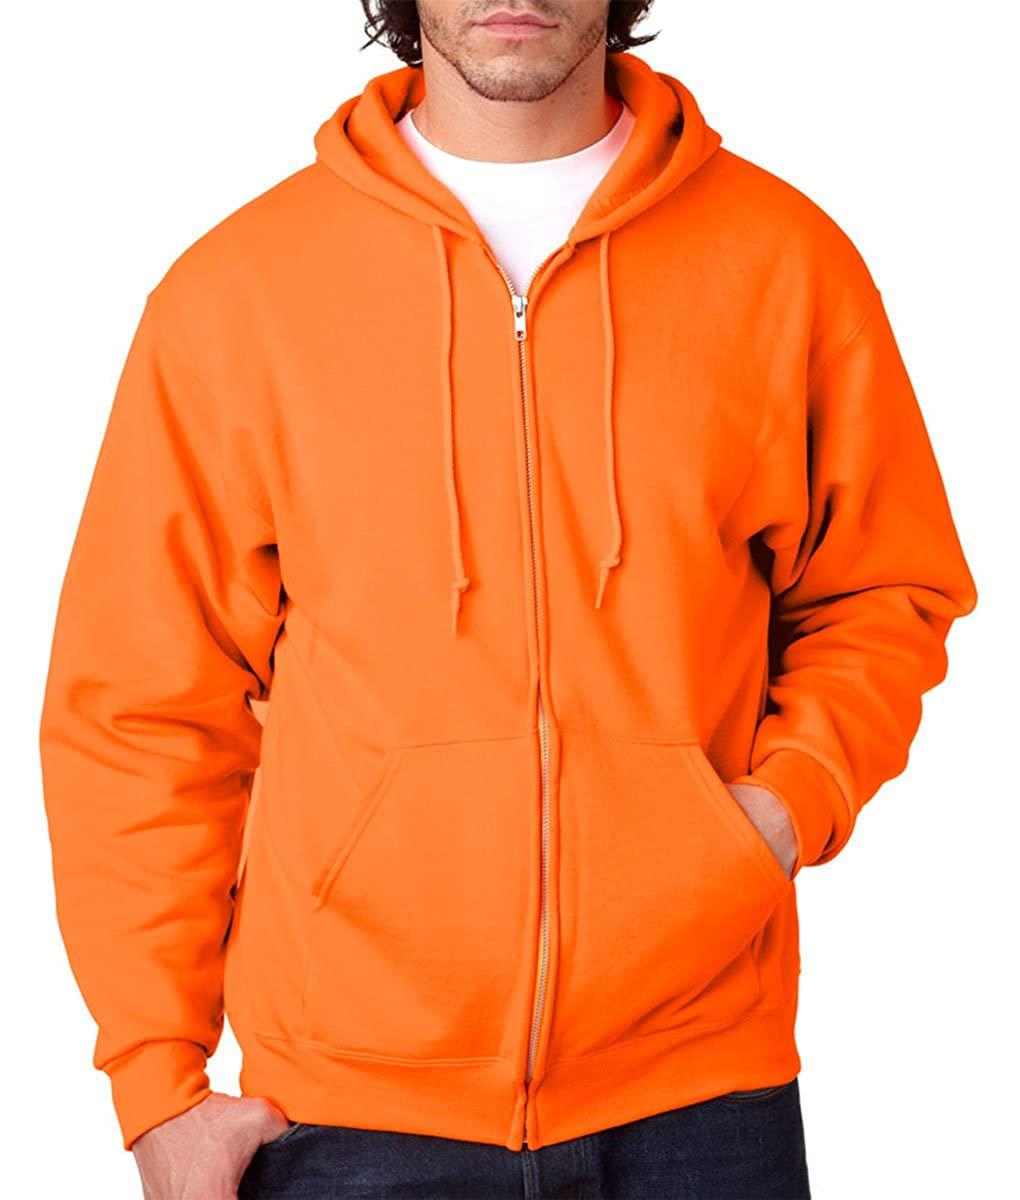 993 - Safety Orange,Medium Jerzees 8 Oz. 50//50 Nublend Fleece Full-Zip Hood